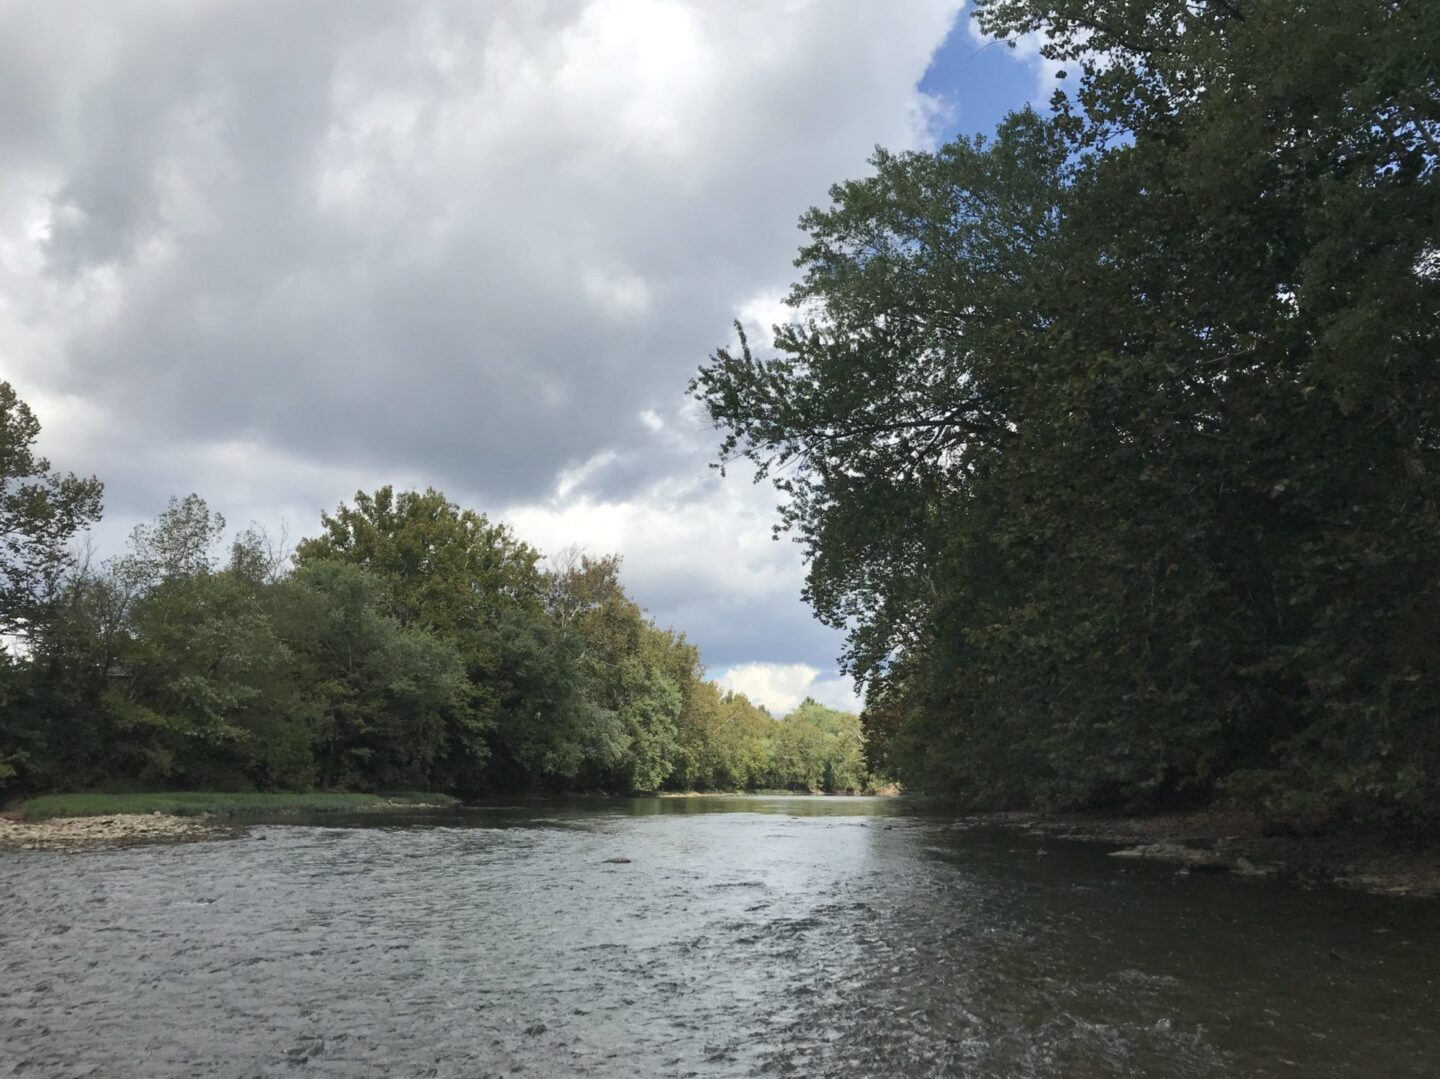 New conservation fund announced for Great Miami River